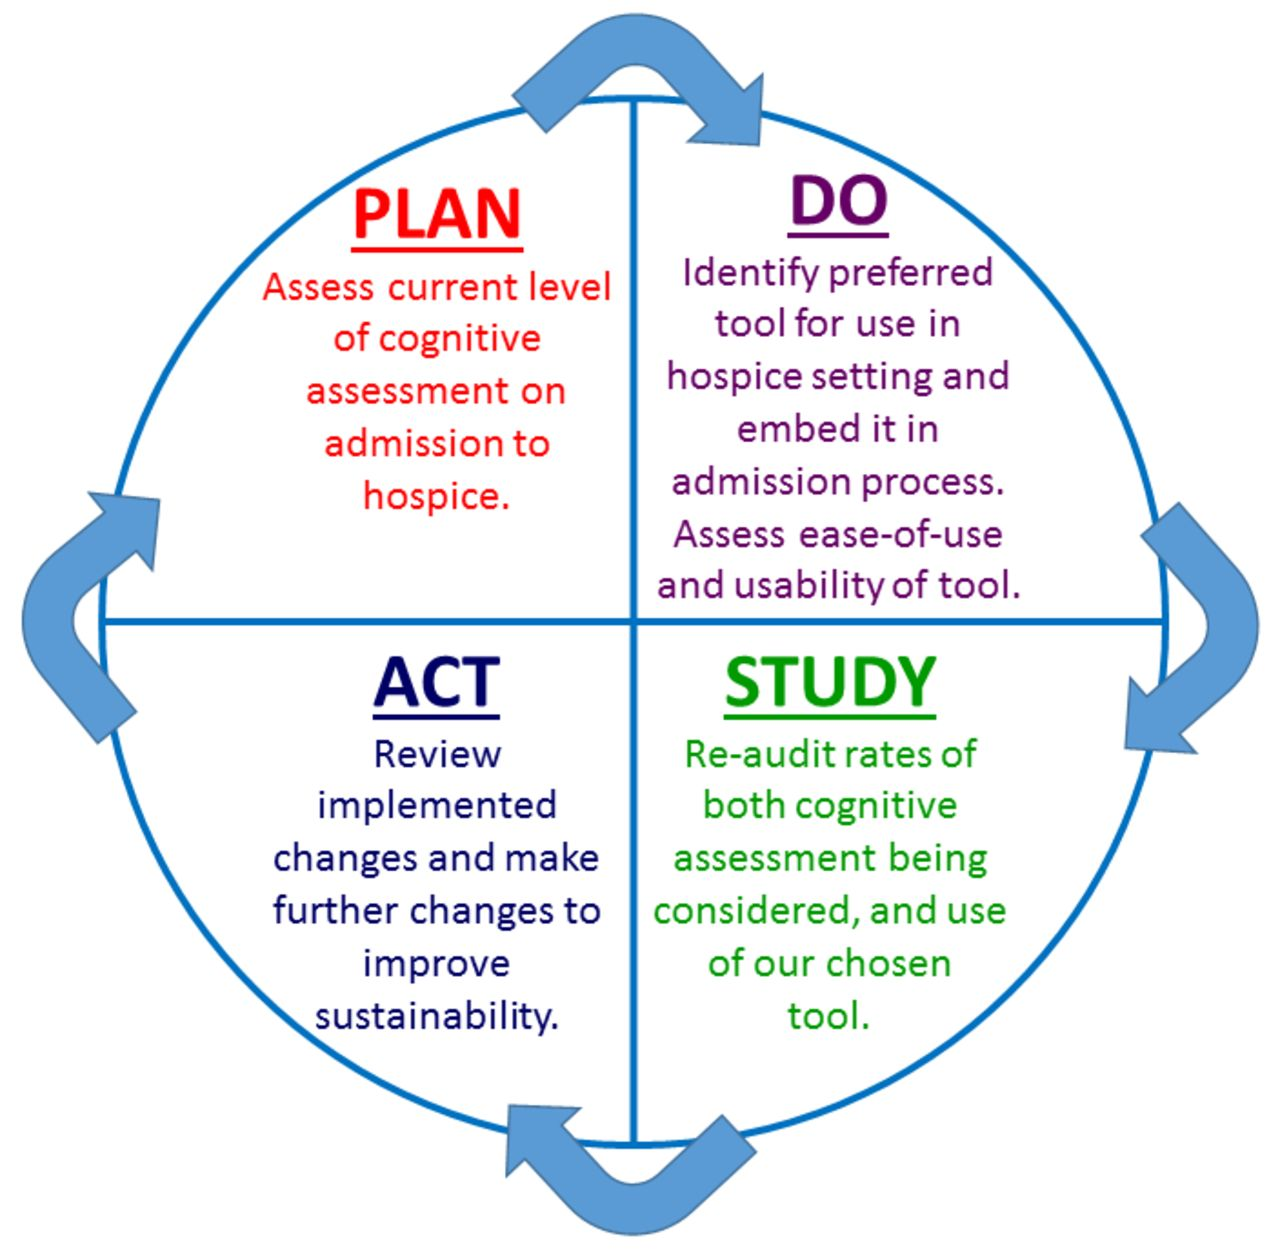 a quality improvement approach to cognitive assessment on